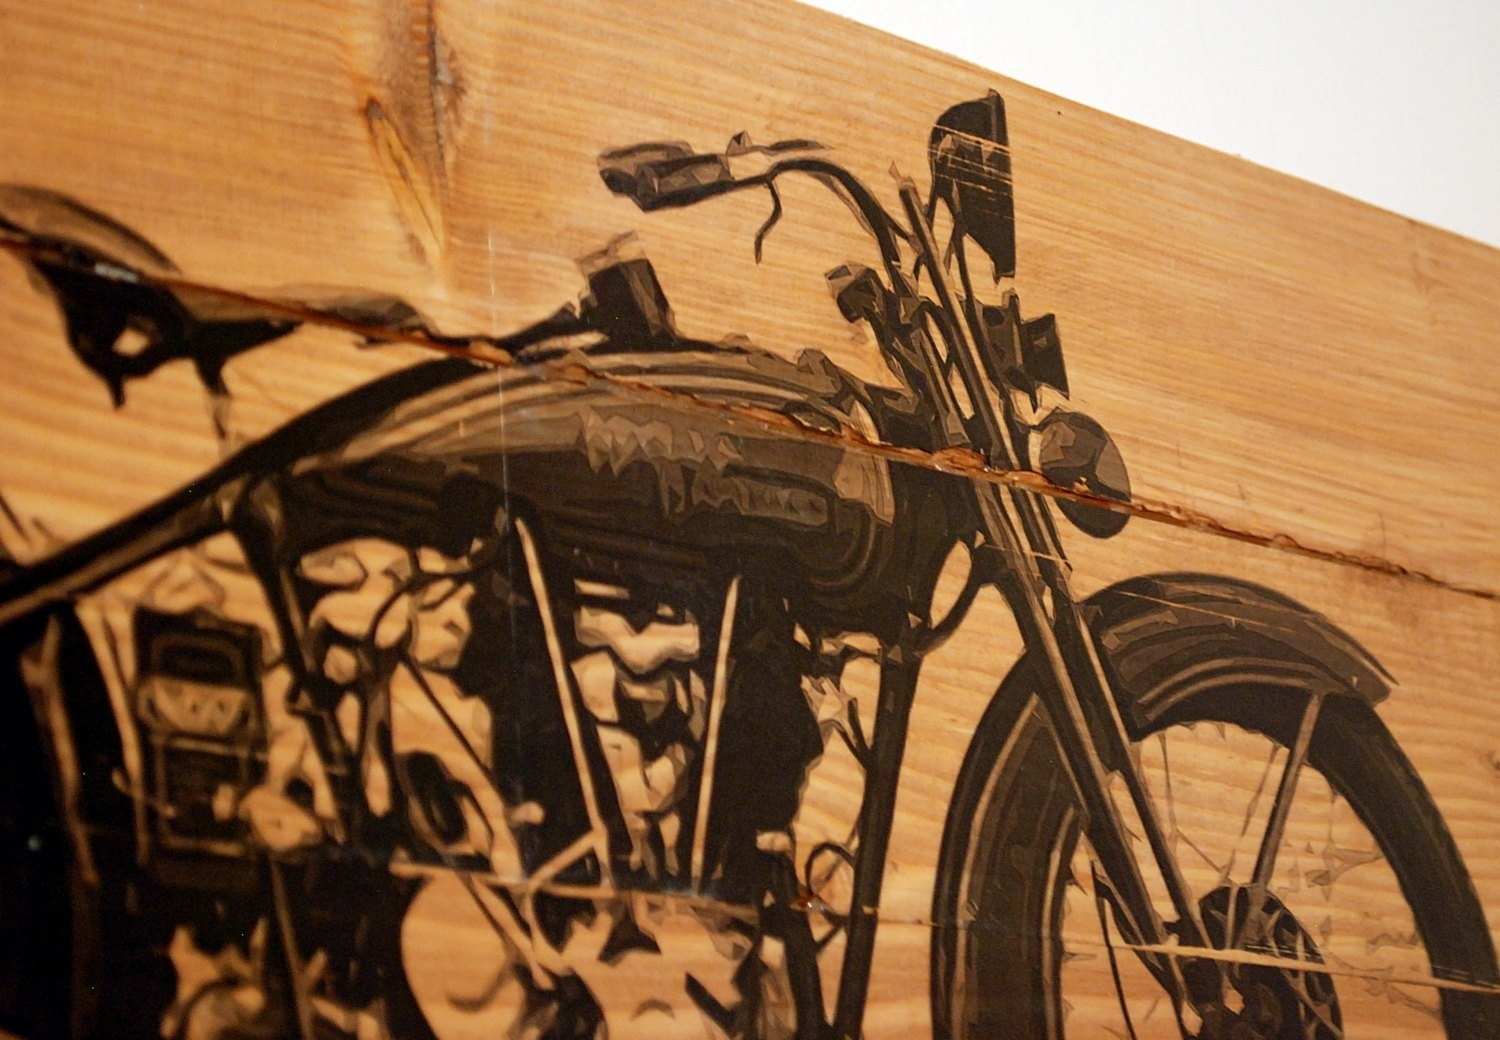 Large Vintage 1928 Harley Davidson Motorcycle Wall Art On, Harley For Most Up To Date Harley Davidson Wall Art (View 18 of 20)